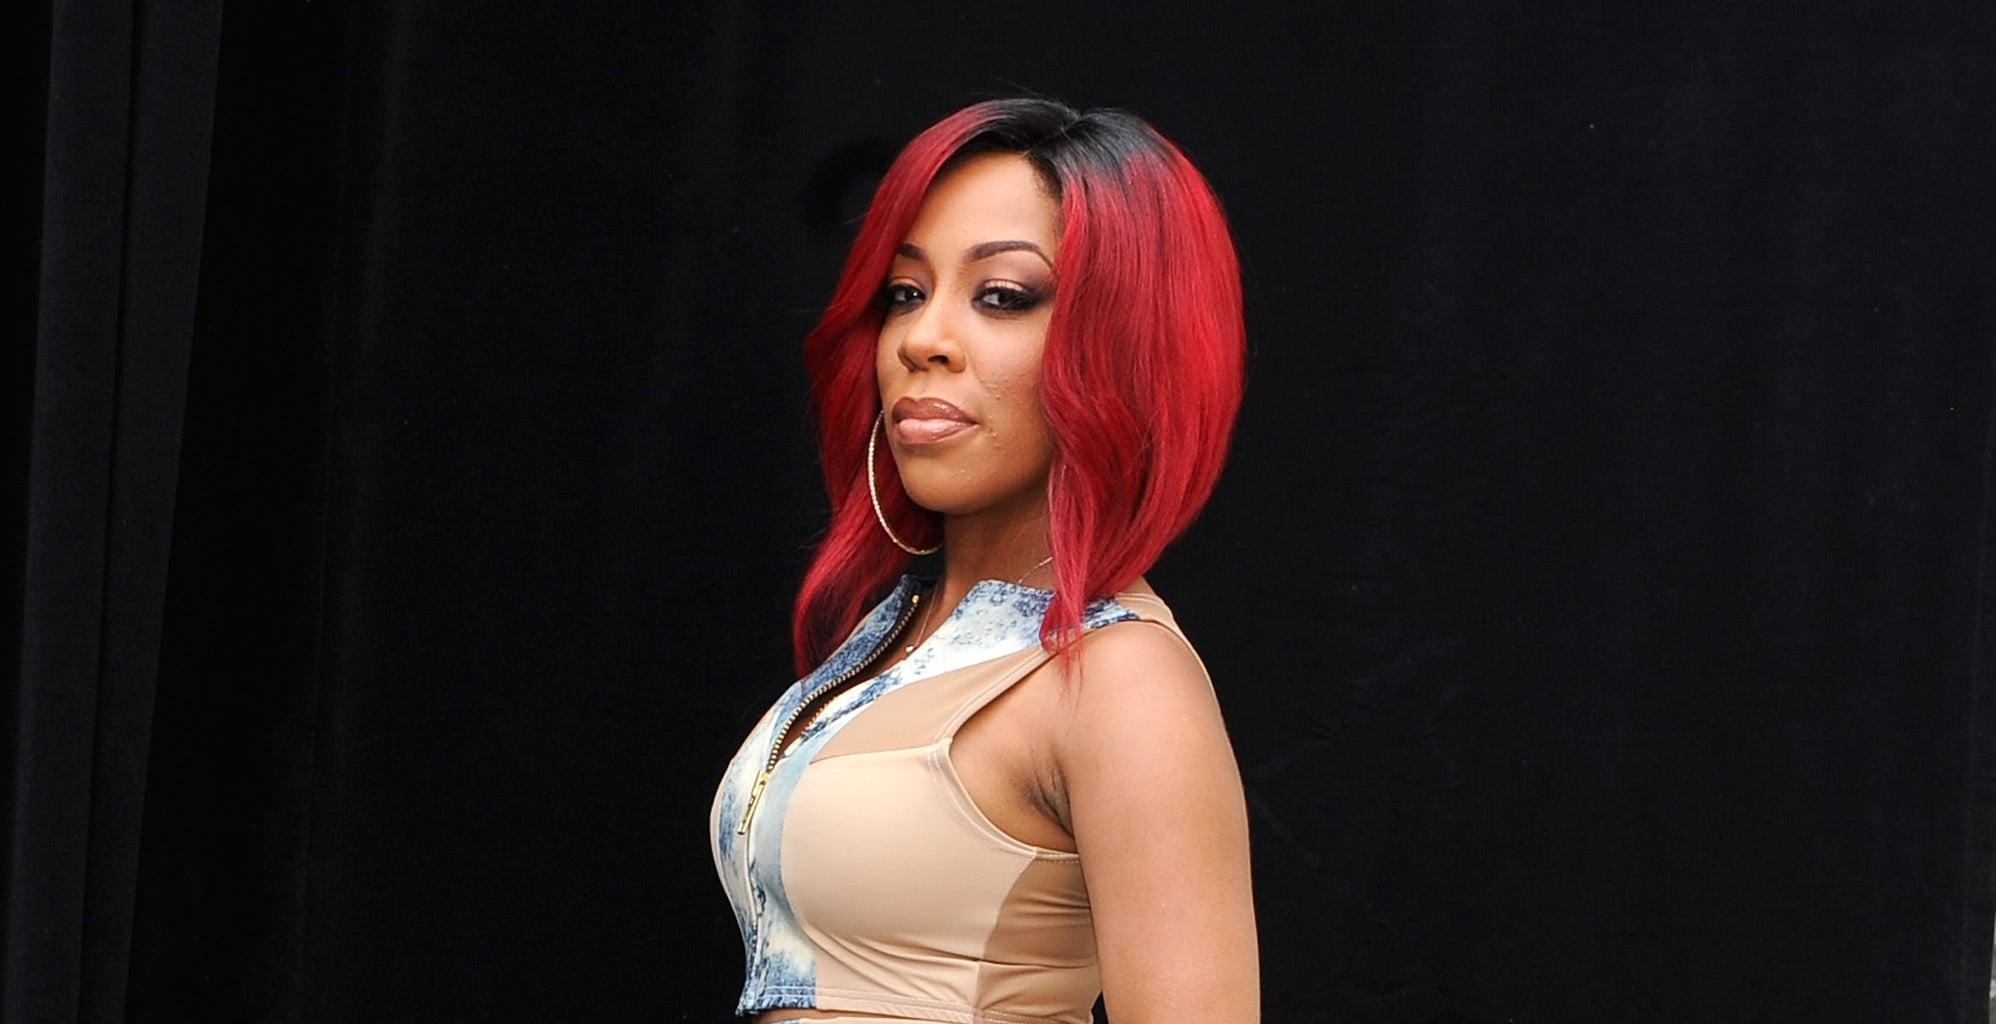 K. Michelle Shocks Everyone By Interrupting An Event In Nashville To Tell The Audience She's The Next Taylor Swift - Here's The Video